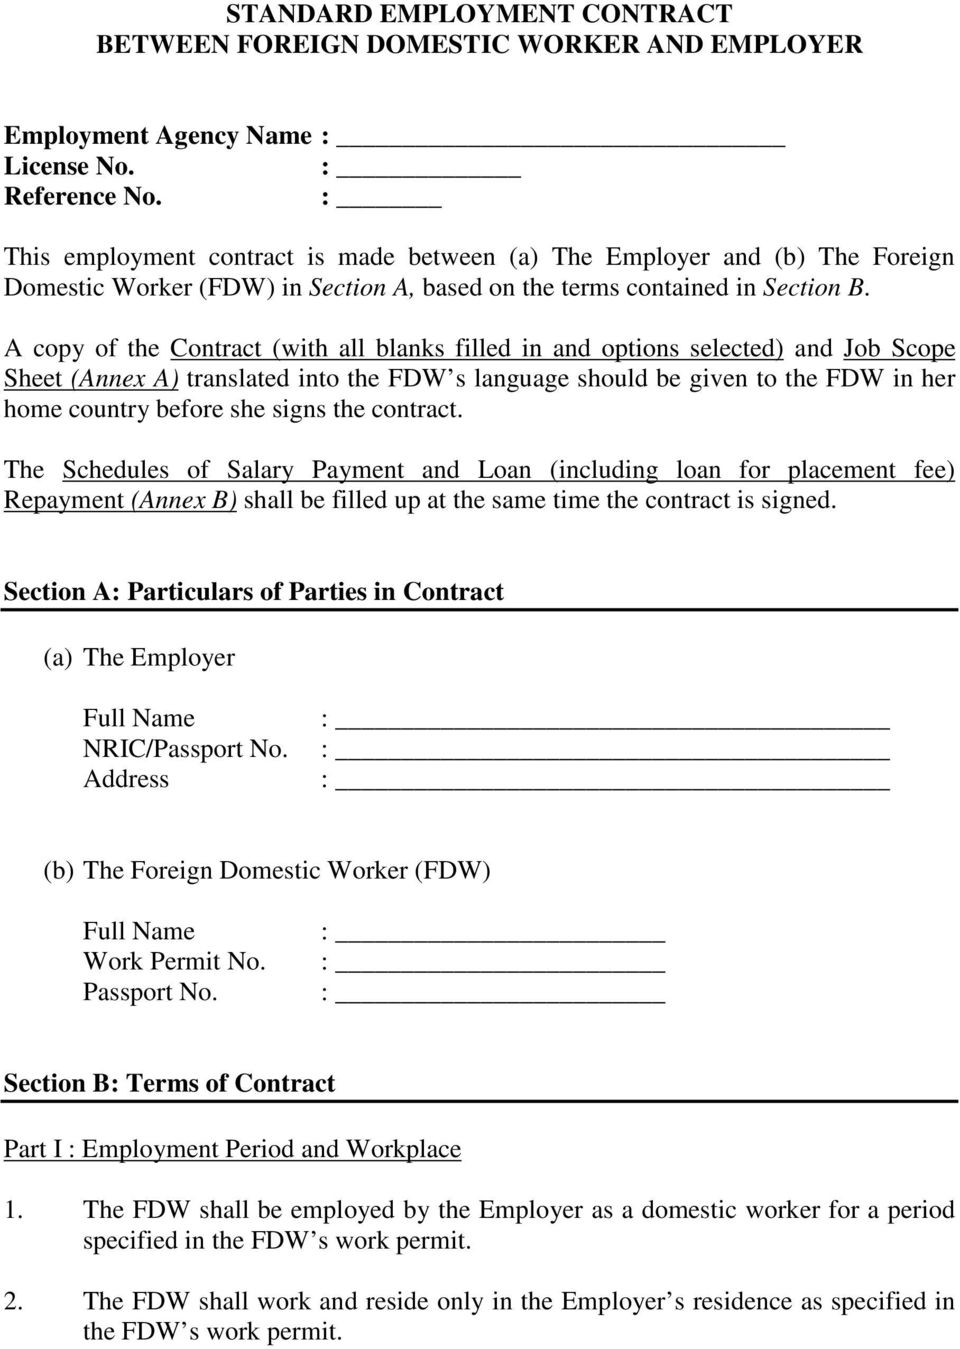 Standard Employment Contract Between Foreign Domestic Worker And Employer Employment Agency Name License No Reference No Pdf Free Download